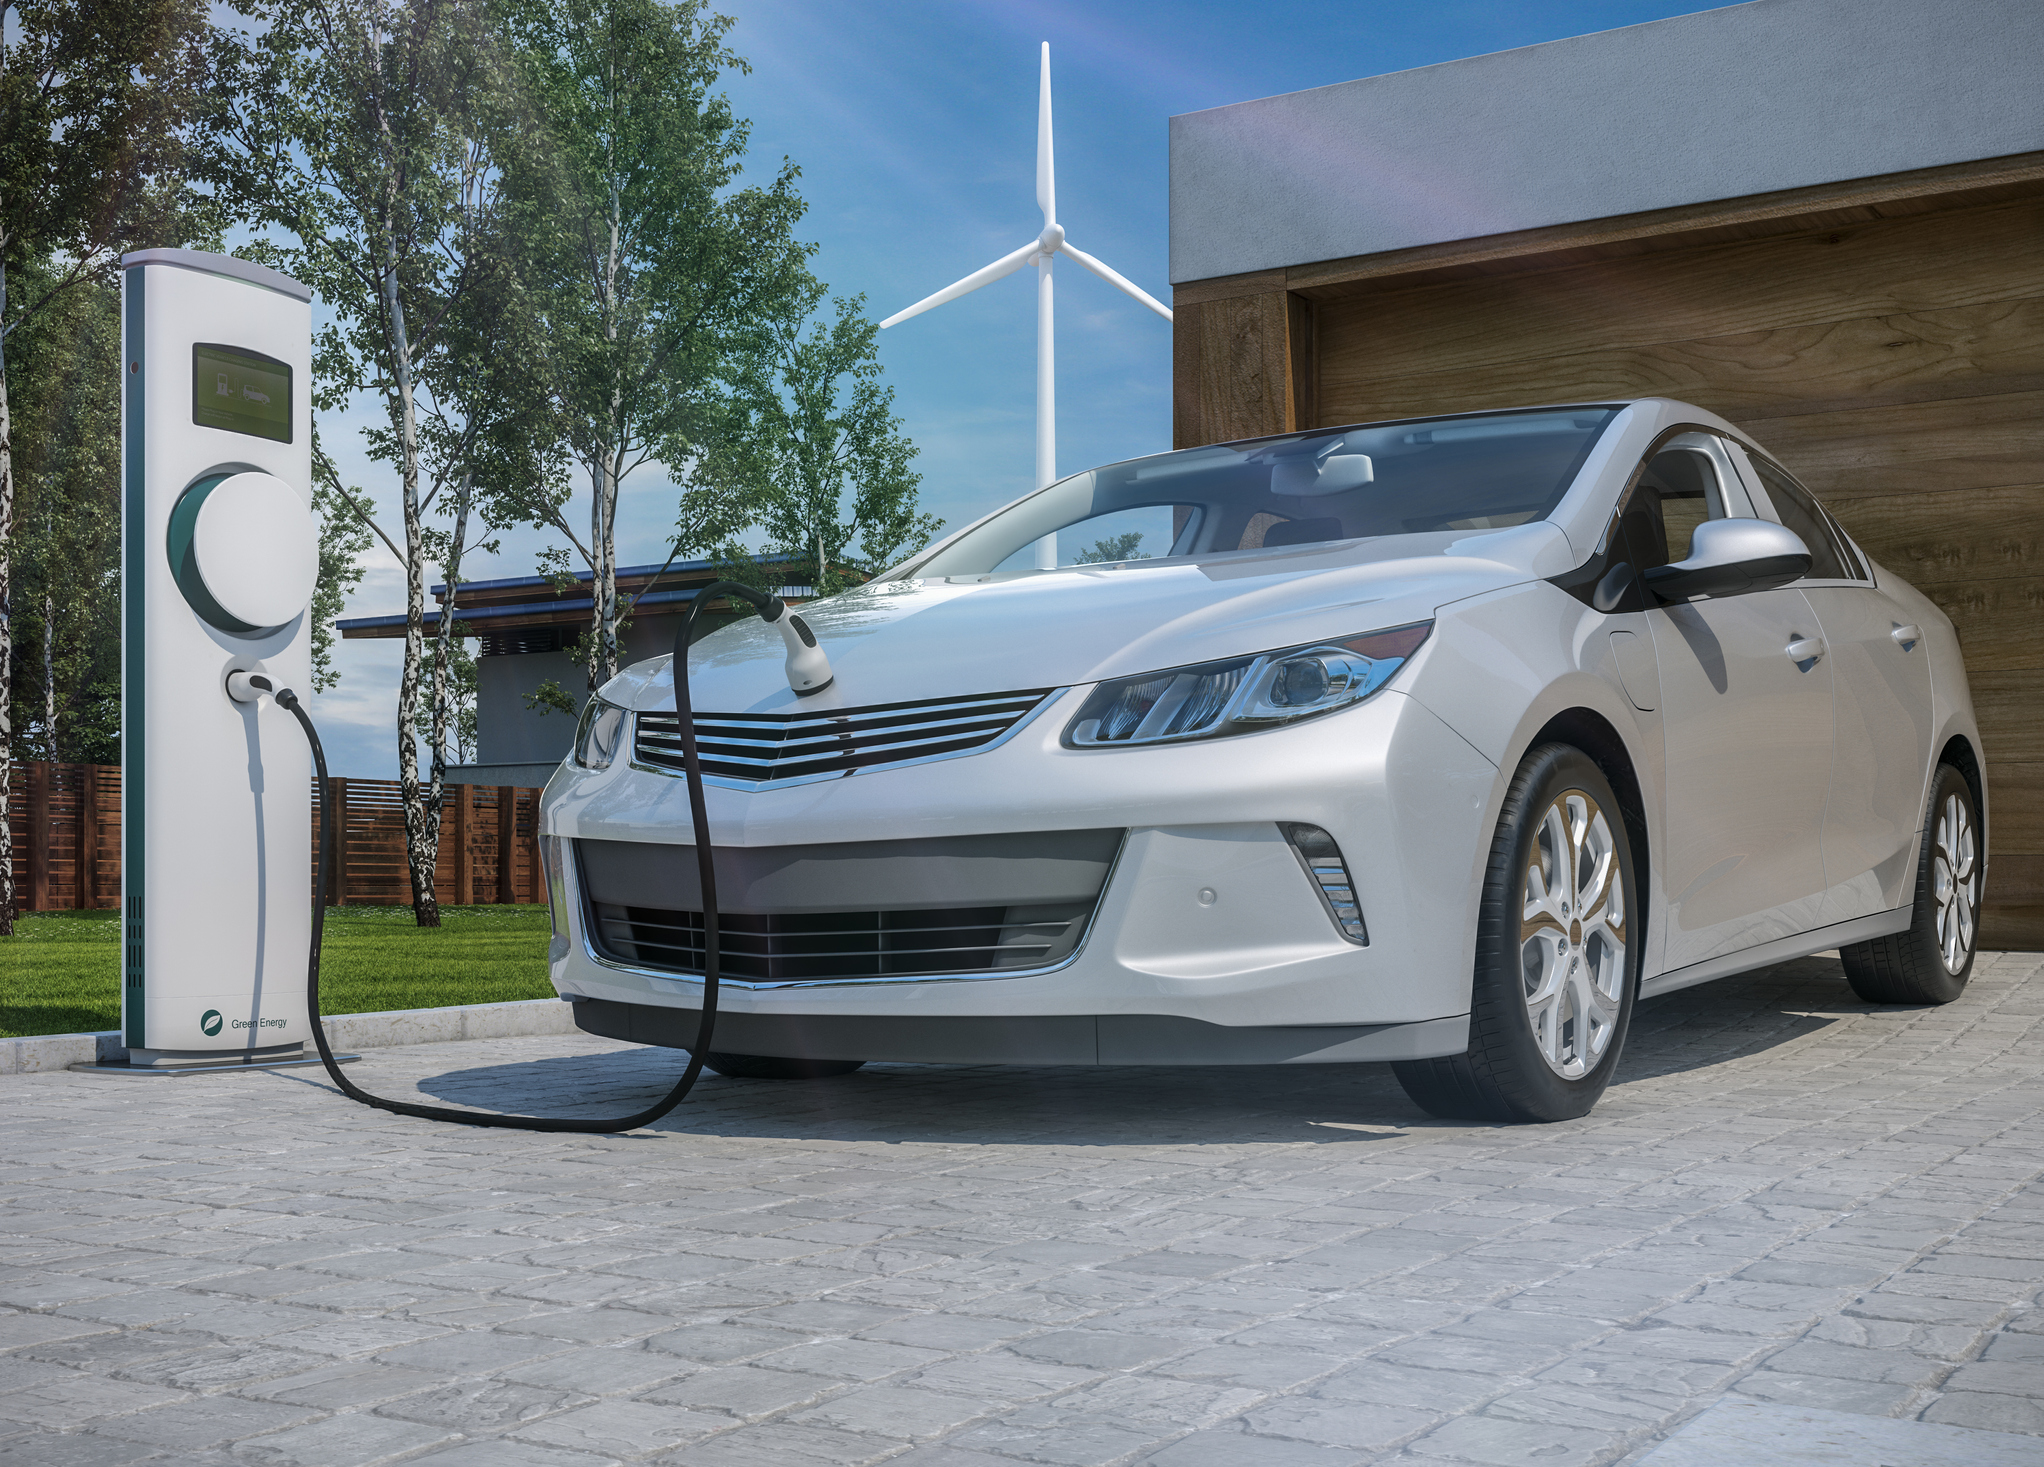 Electric vehicle charging in a driveway.